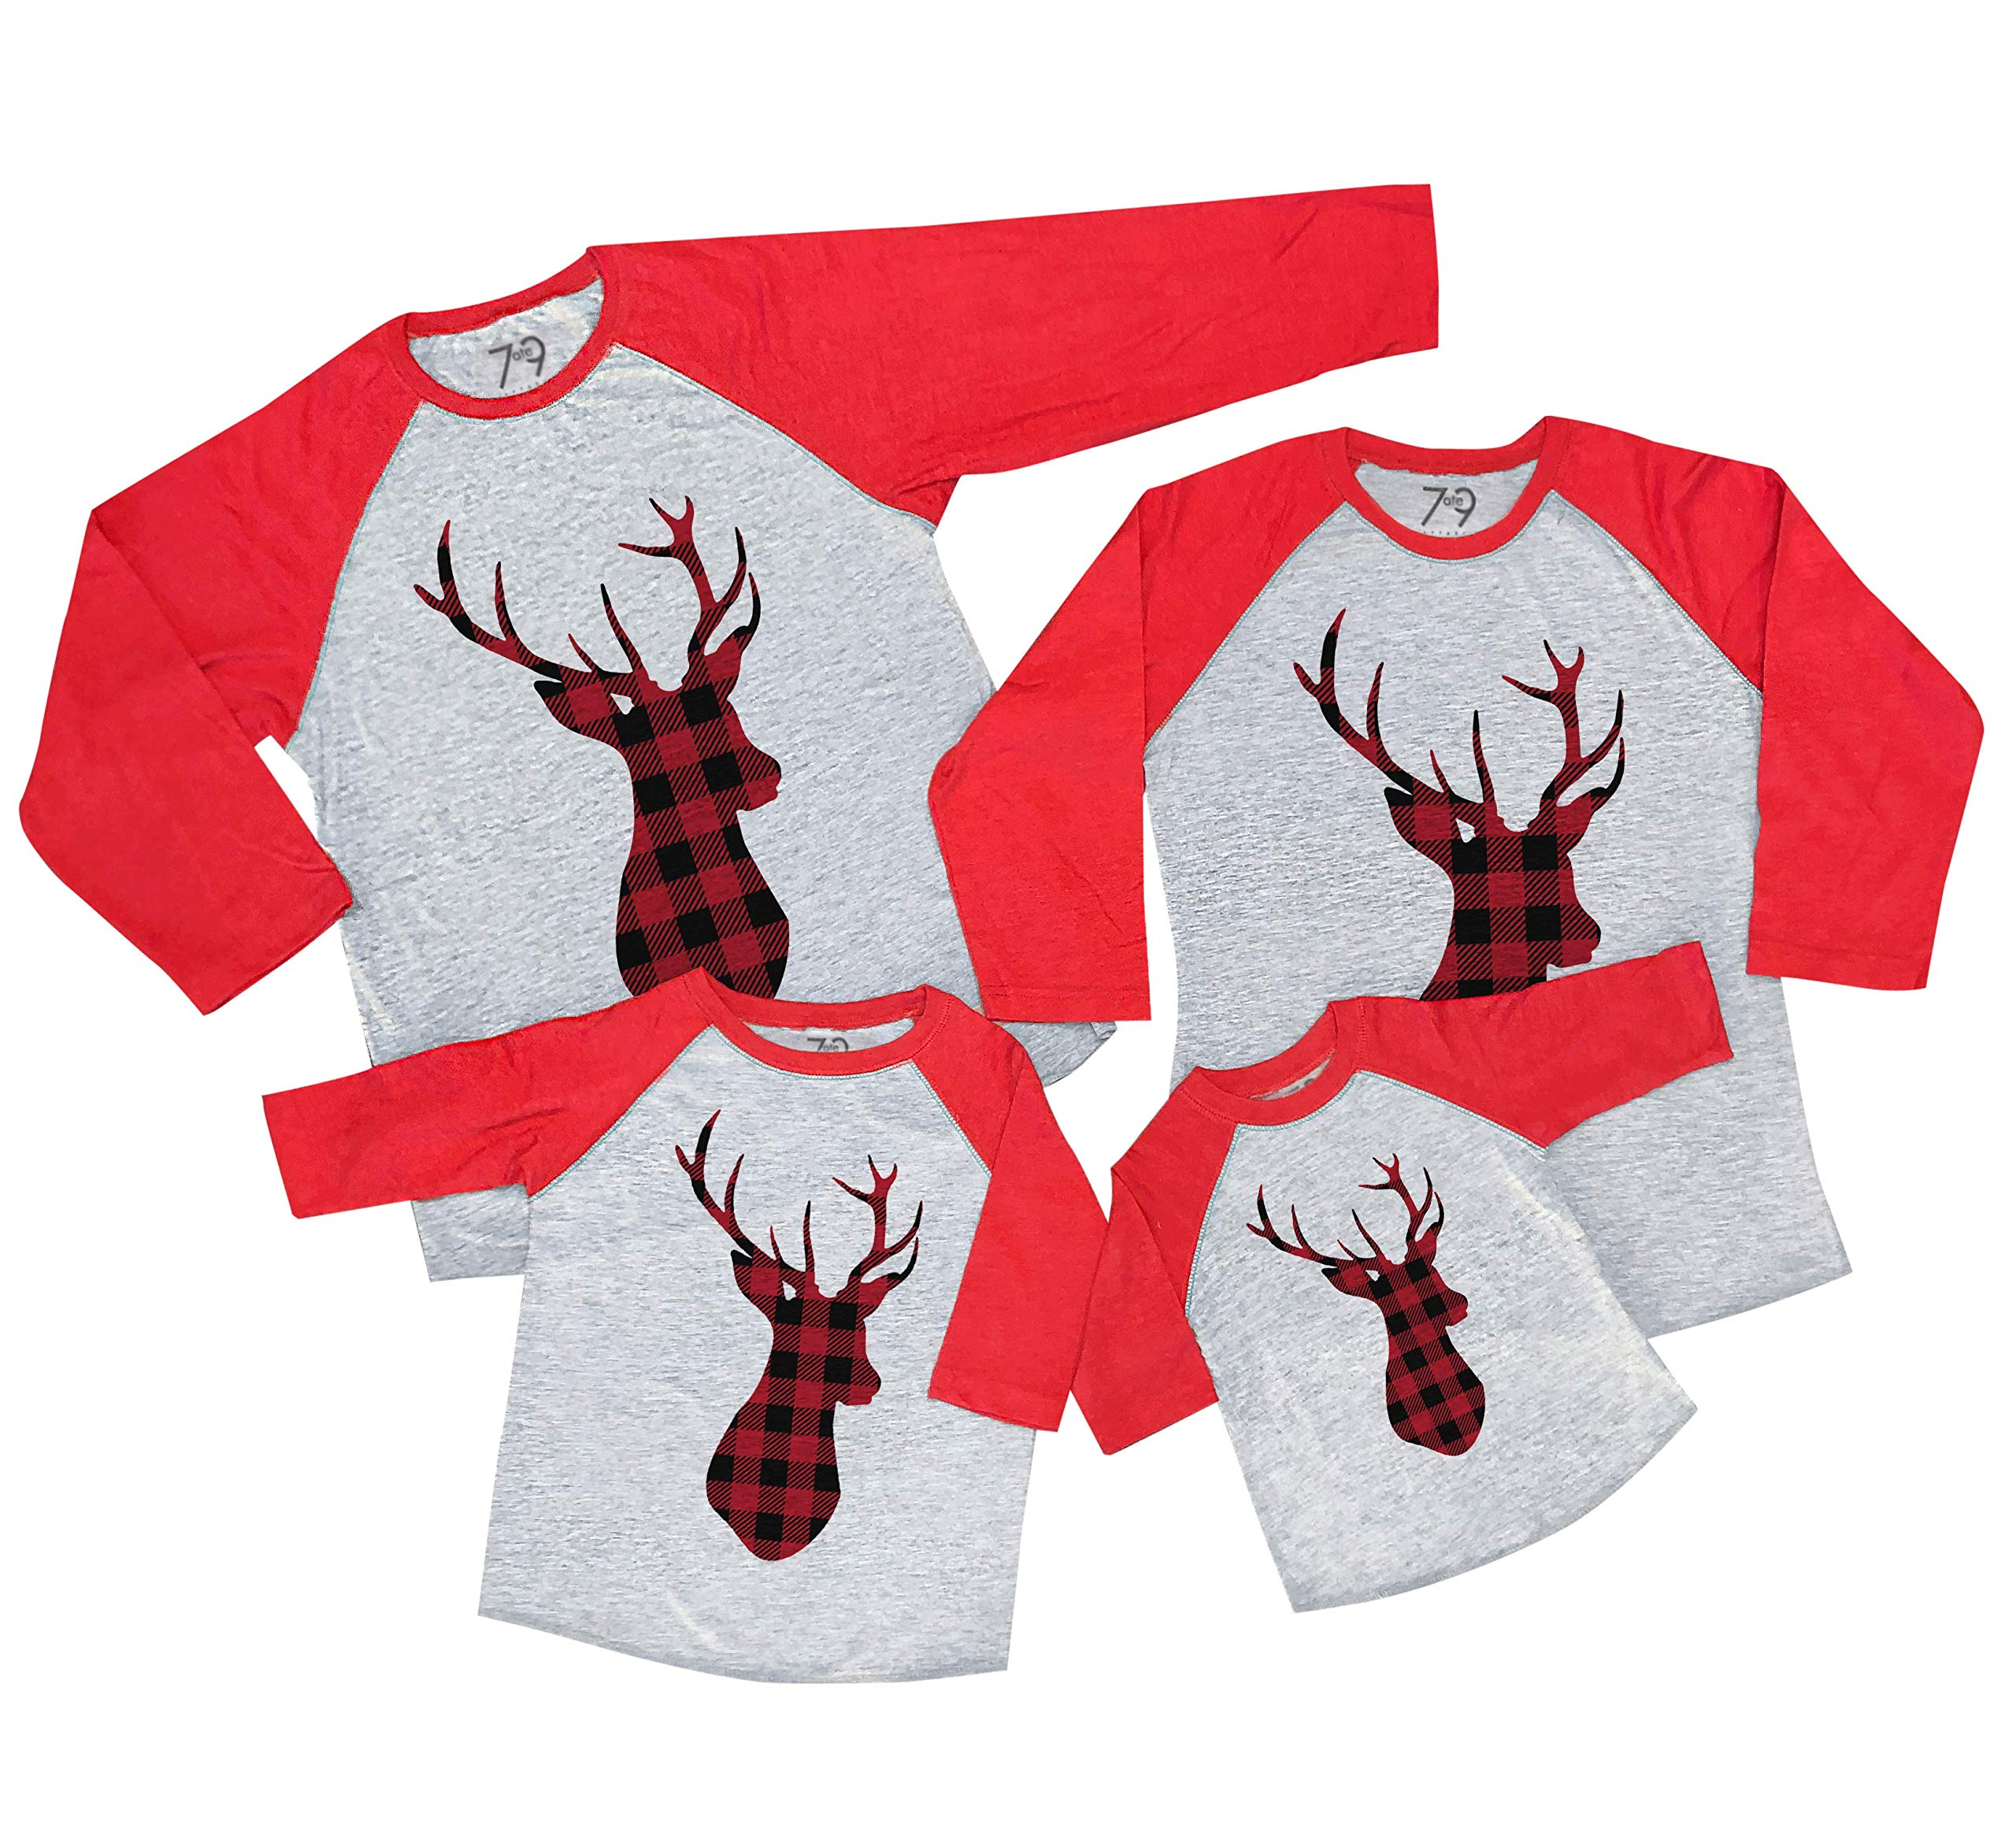 7 ate 9 Apparel Matching Family Christmas Shirts - Plaid Deer Red Shirt